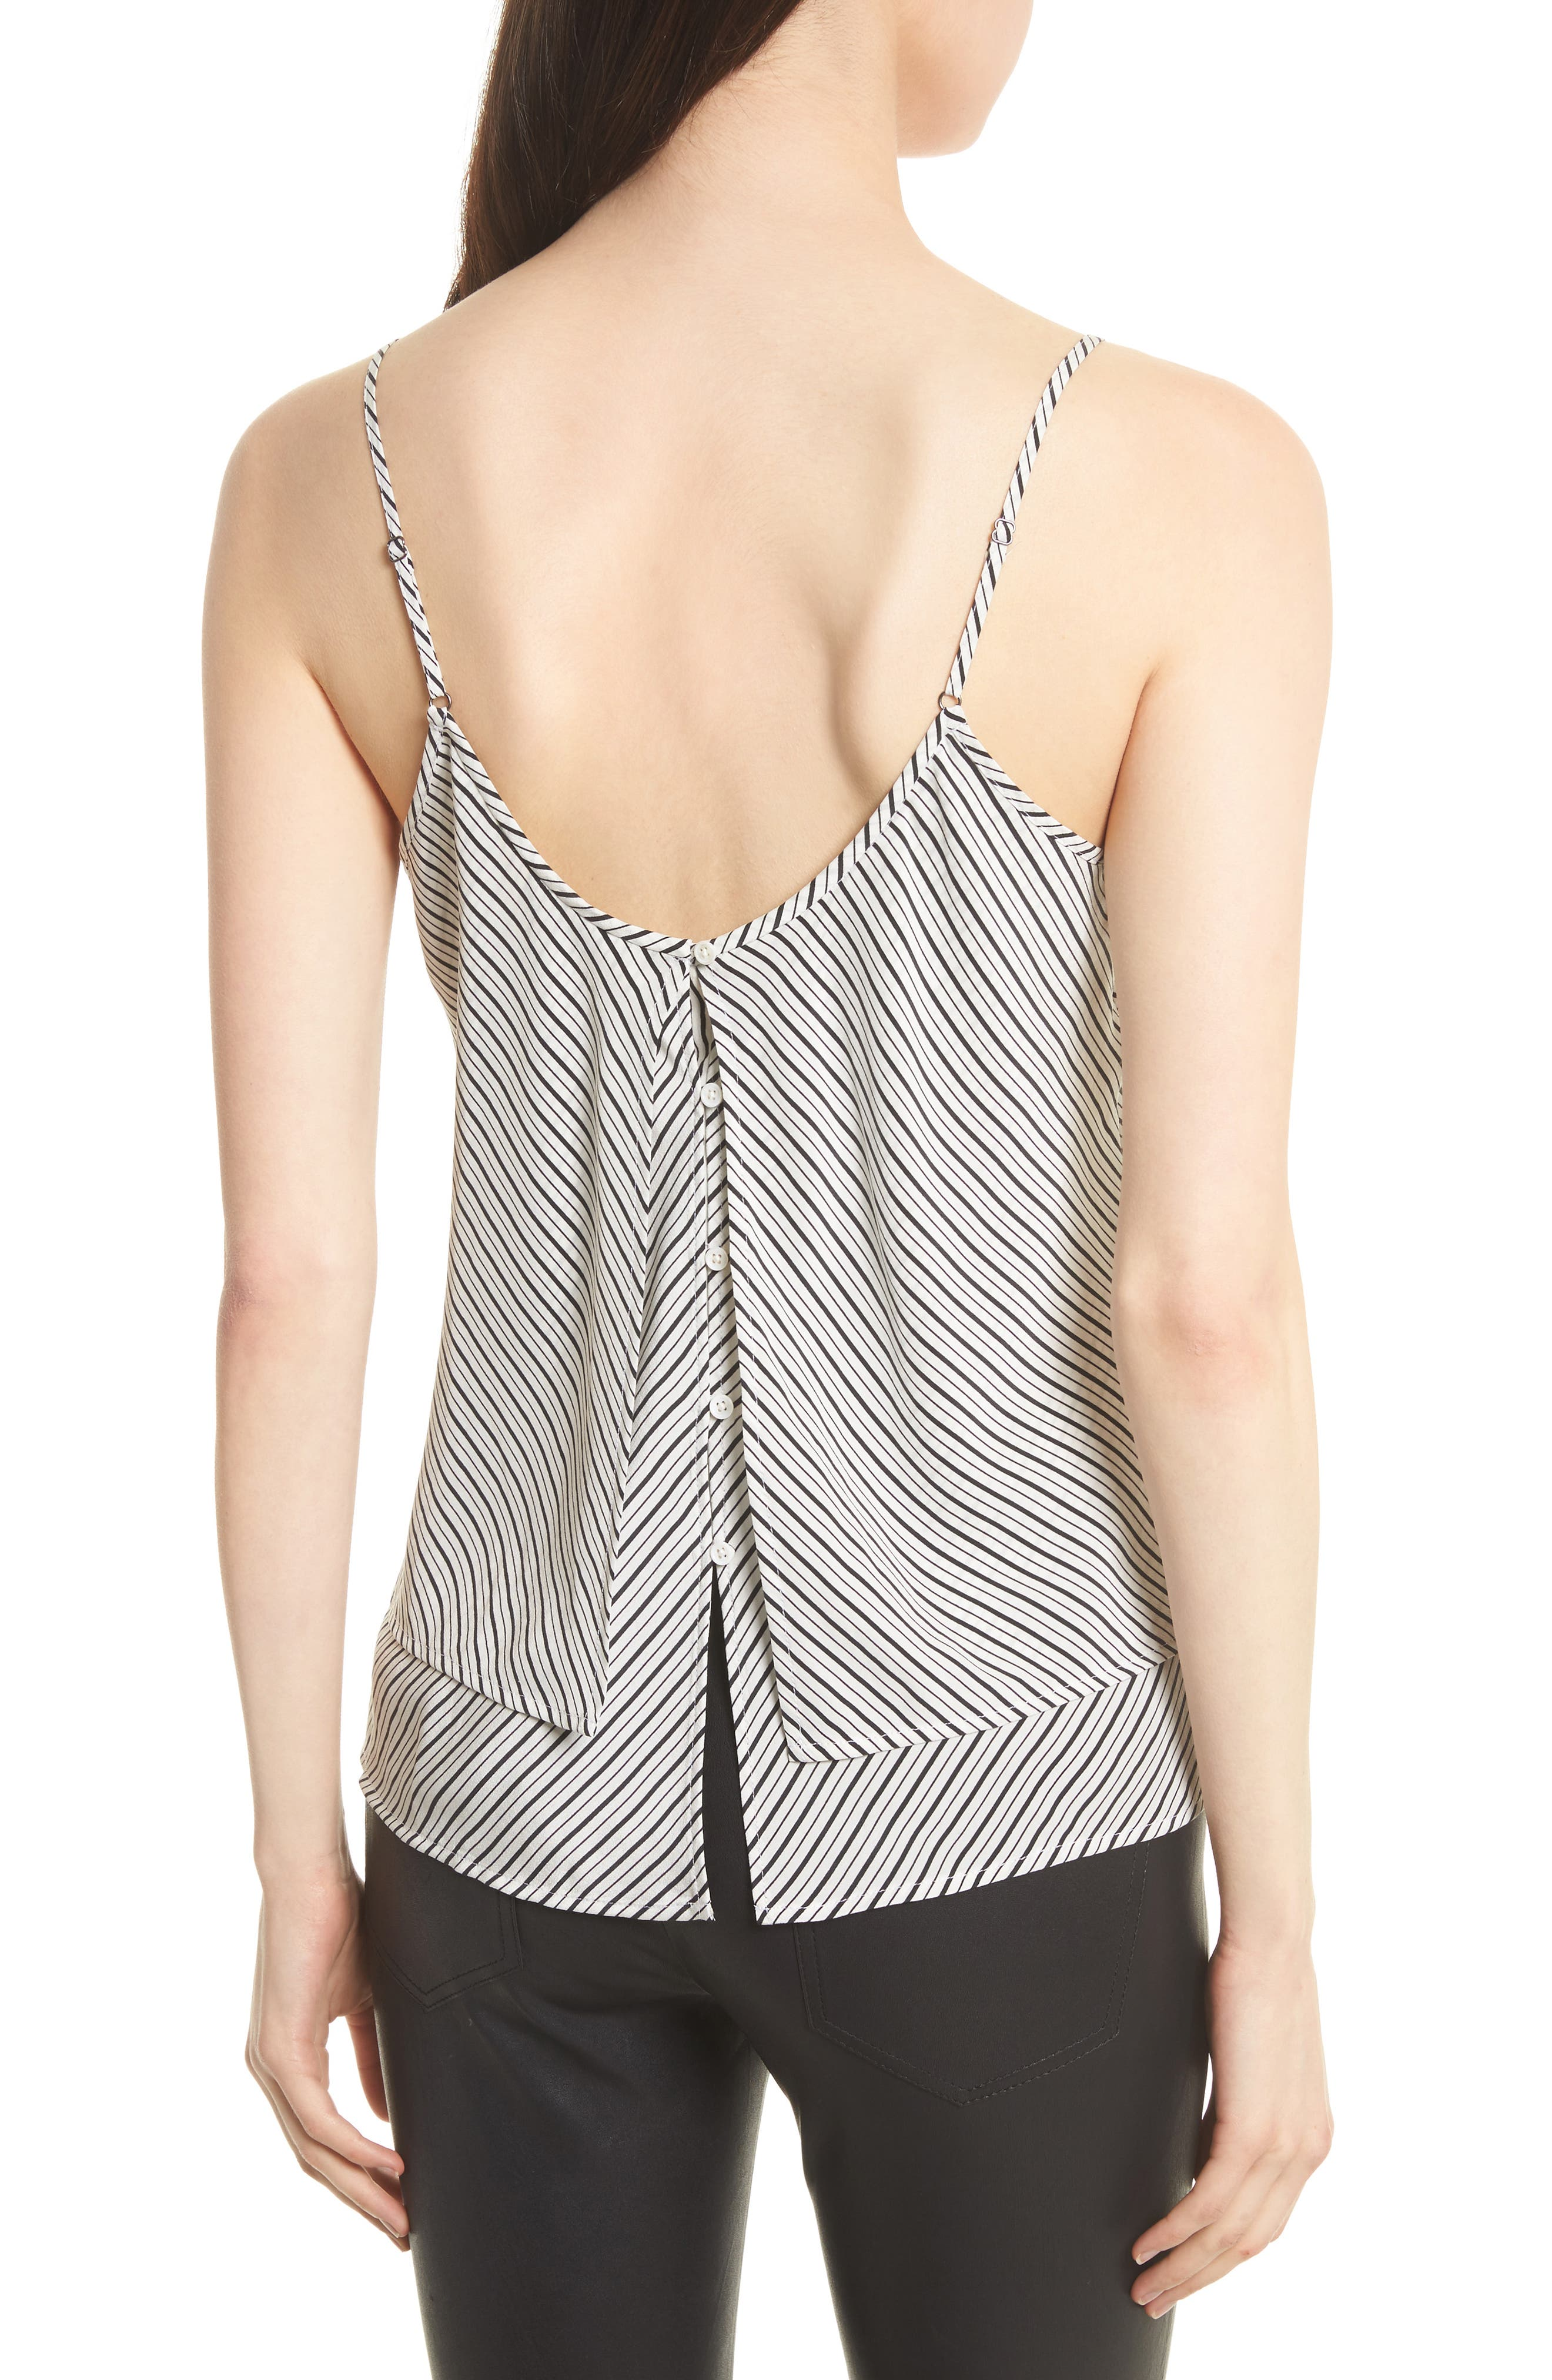 Islaya Silk Tank,                             Alternate thumbnail 2, color,                             Porcelain/ Caviar